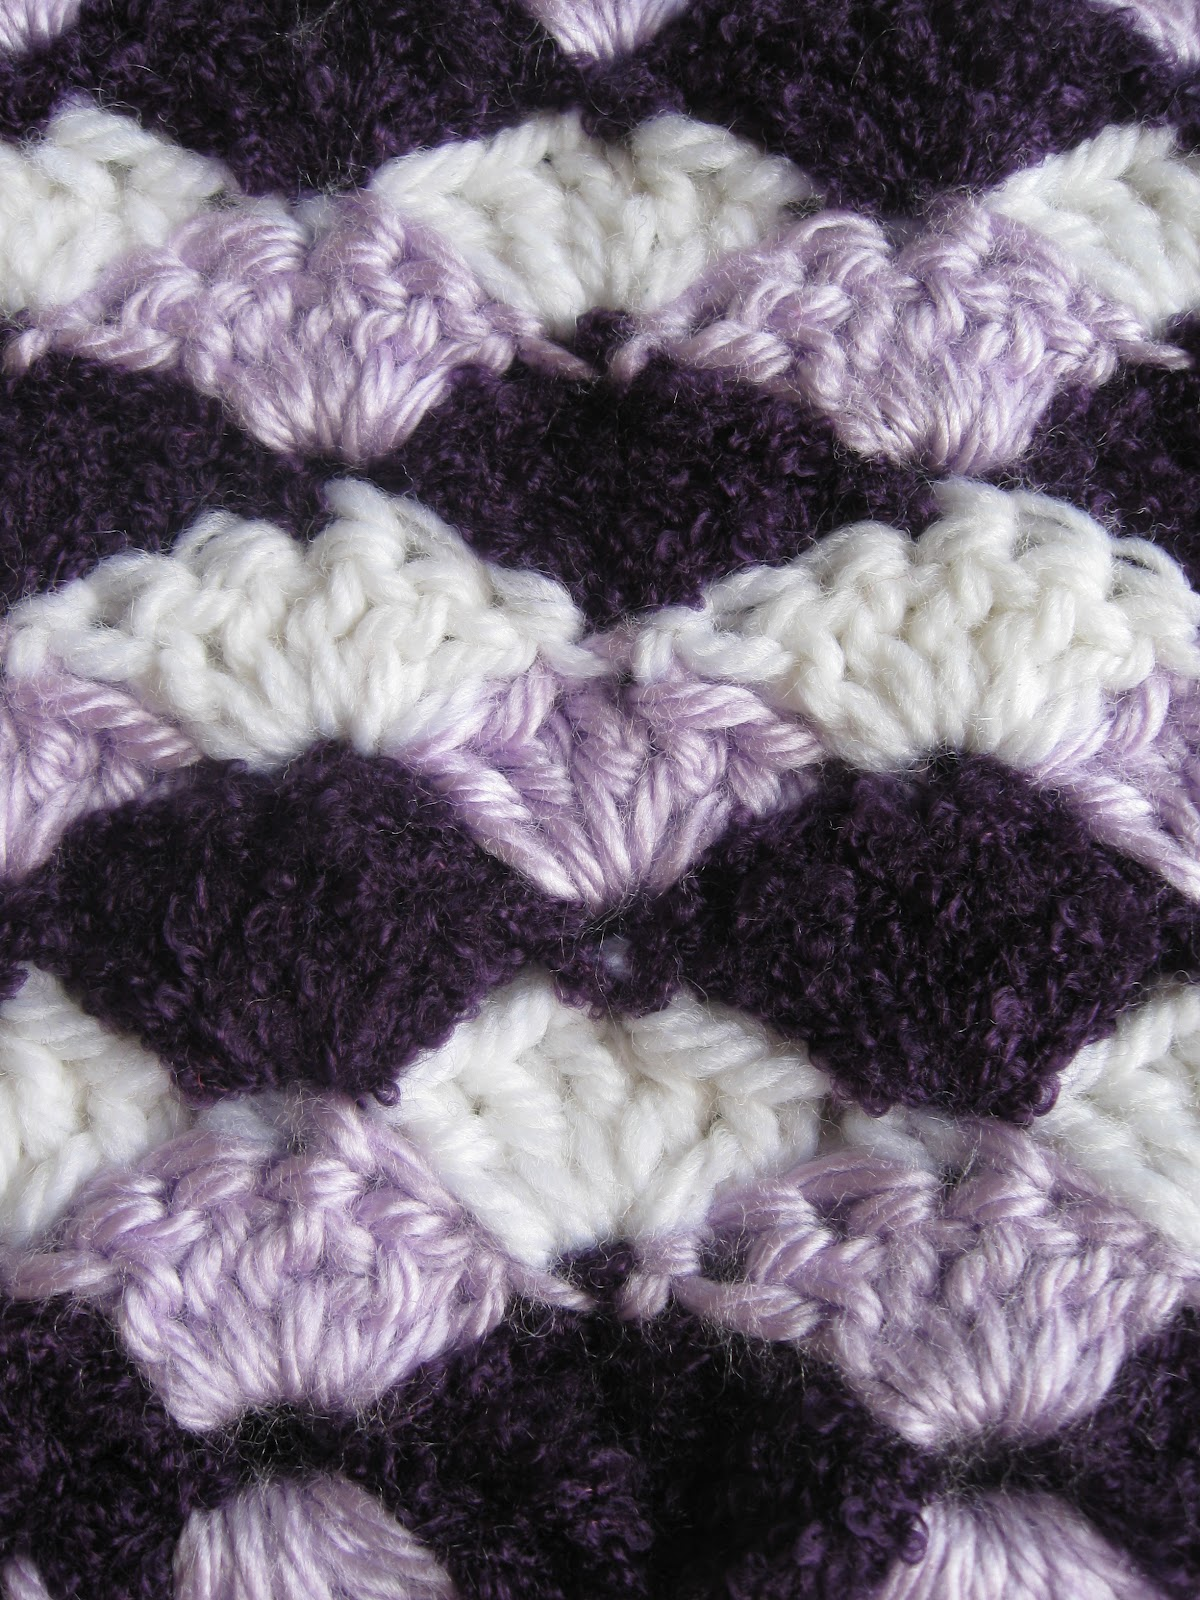 Crochet Knot : Celtic Knot Crochet: Free Patterns